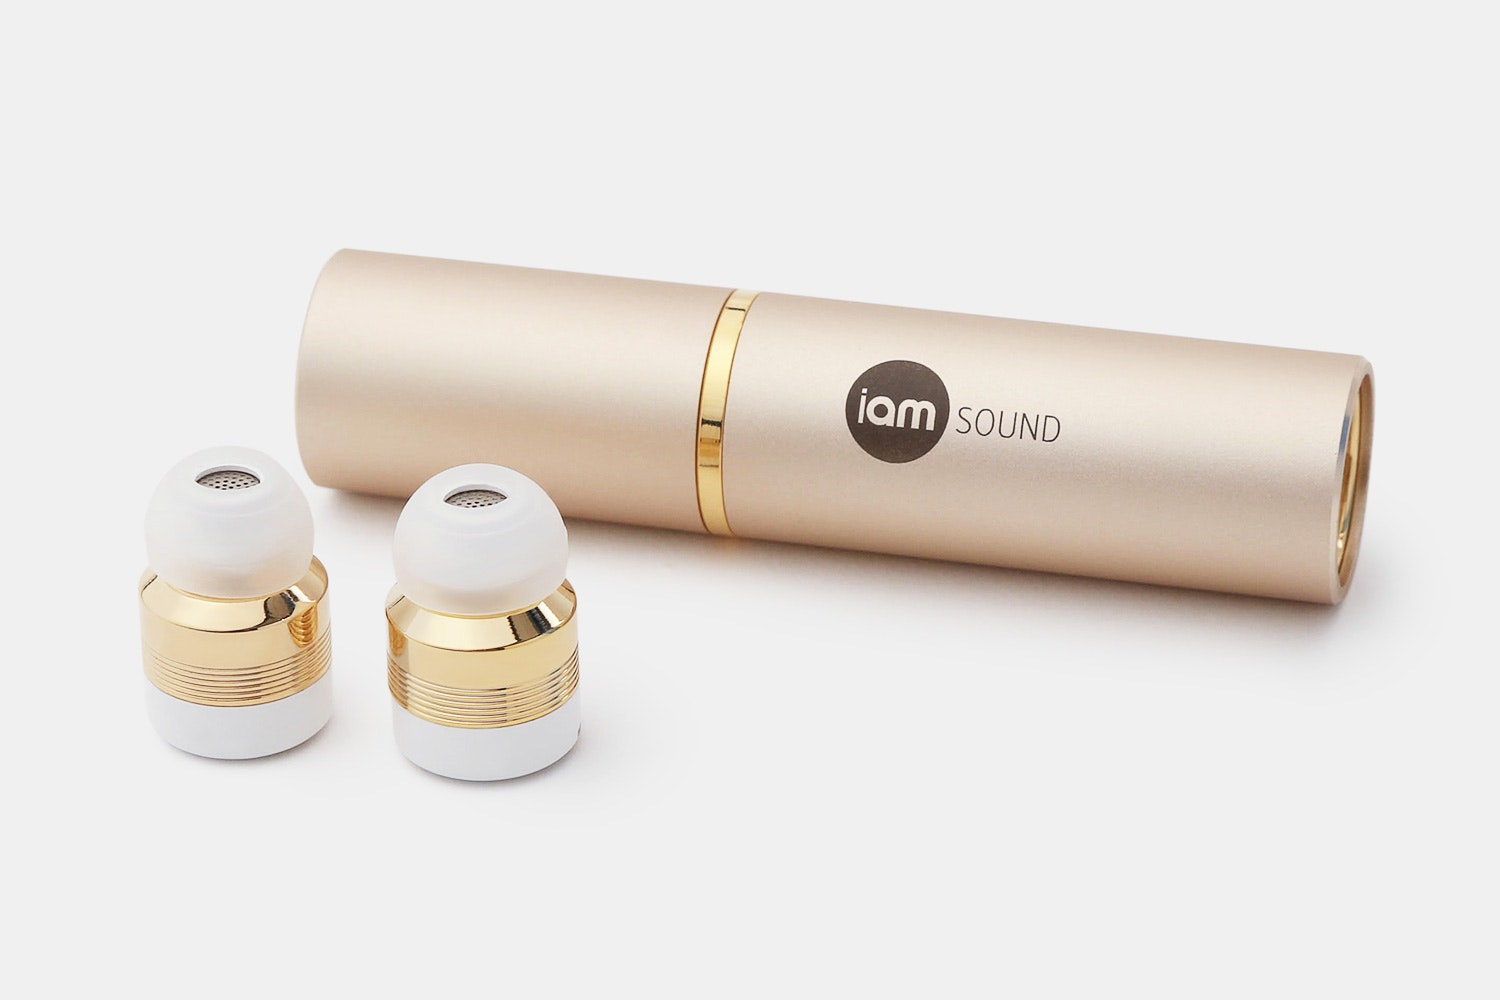 iAm Sound Smallest True Wireless Stereo Earbuds